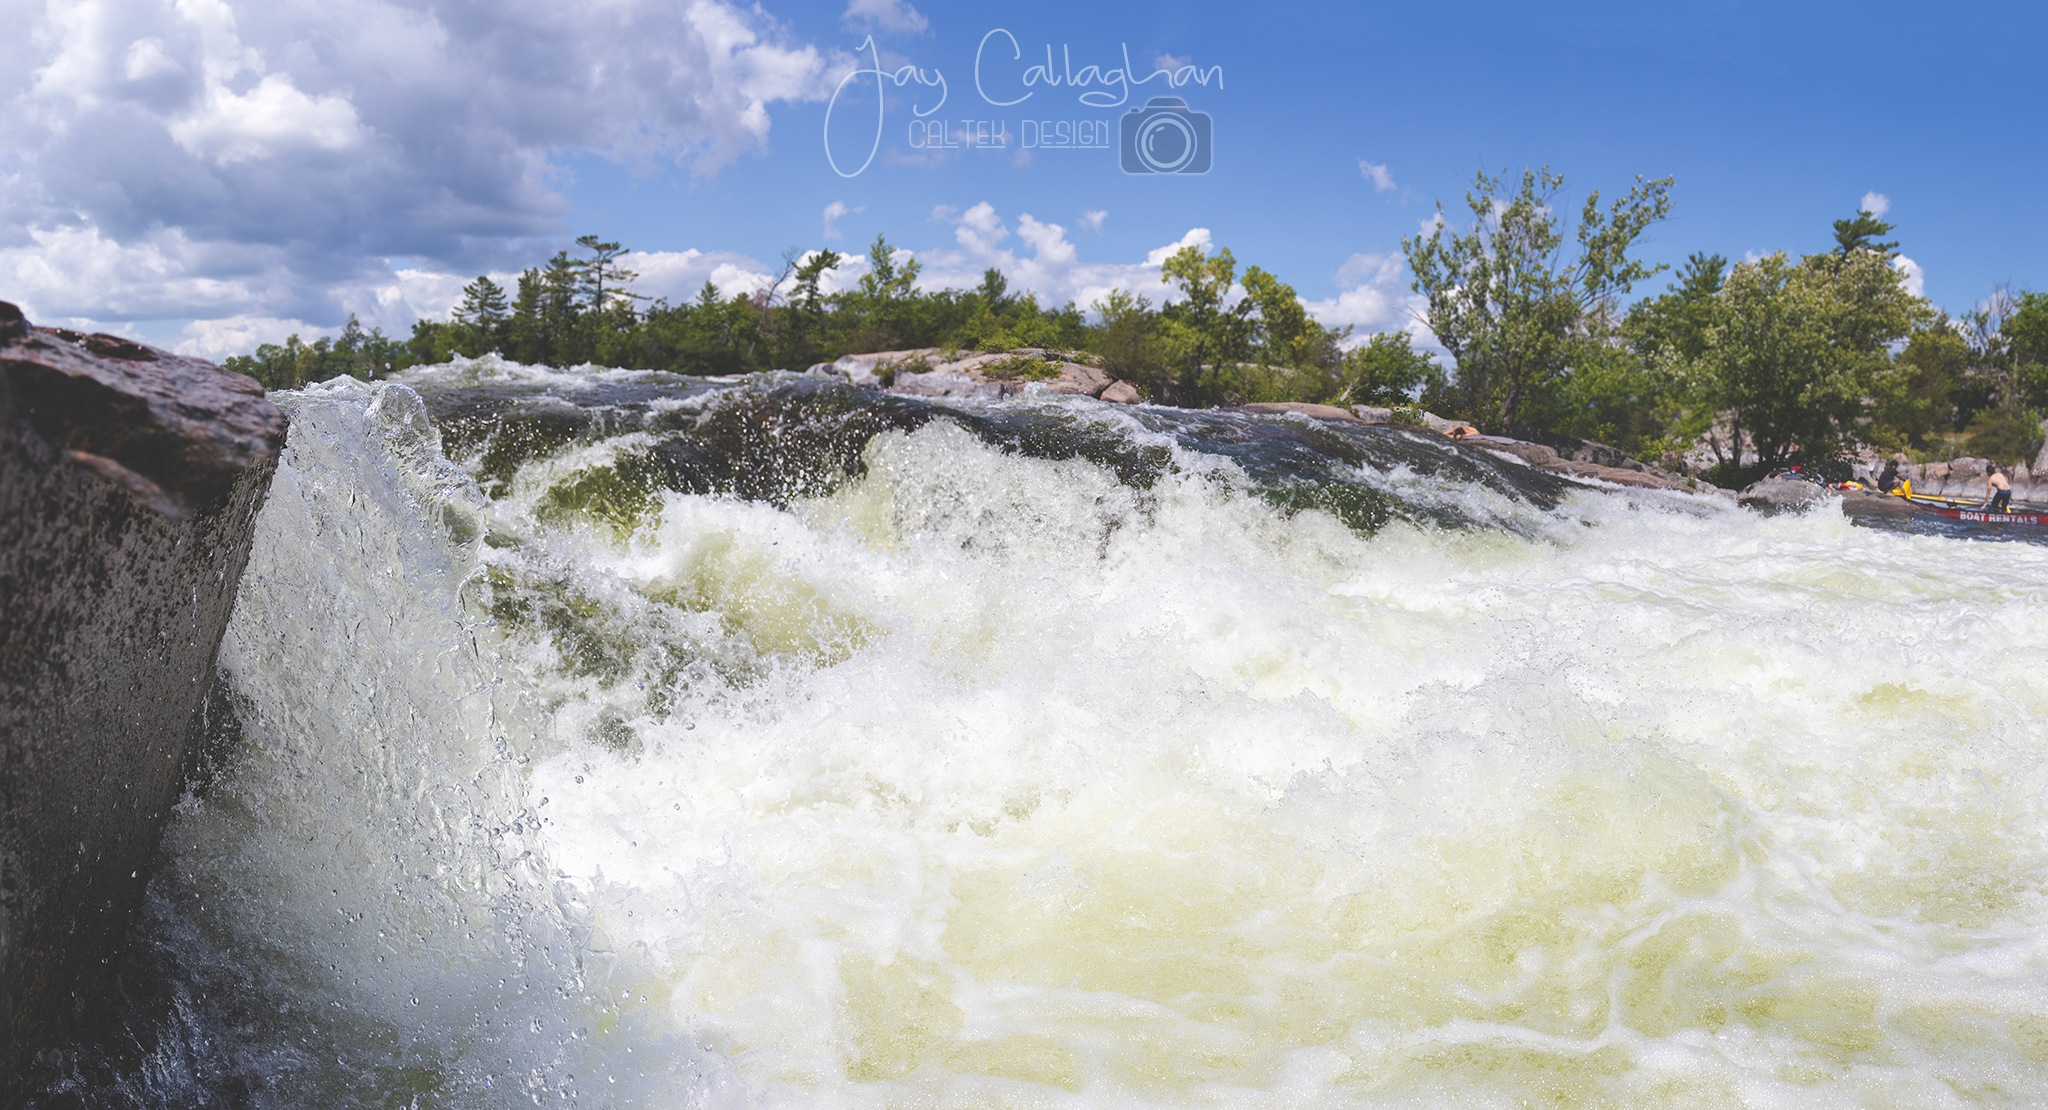 Burleigh Falls in July by Jay Callaghan